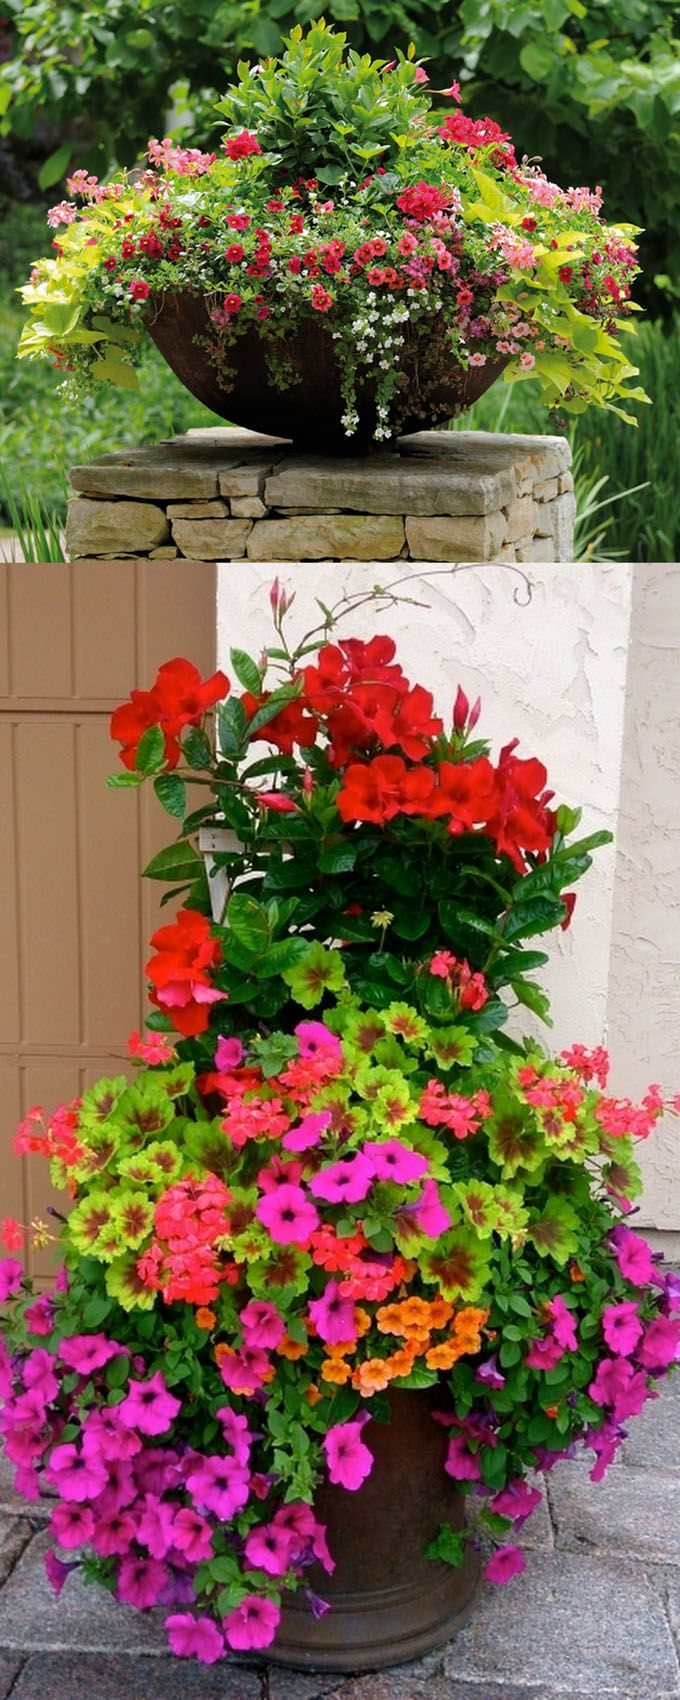 Container Garden Design 1699 best container gardening ideas images on pinterest | blue